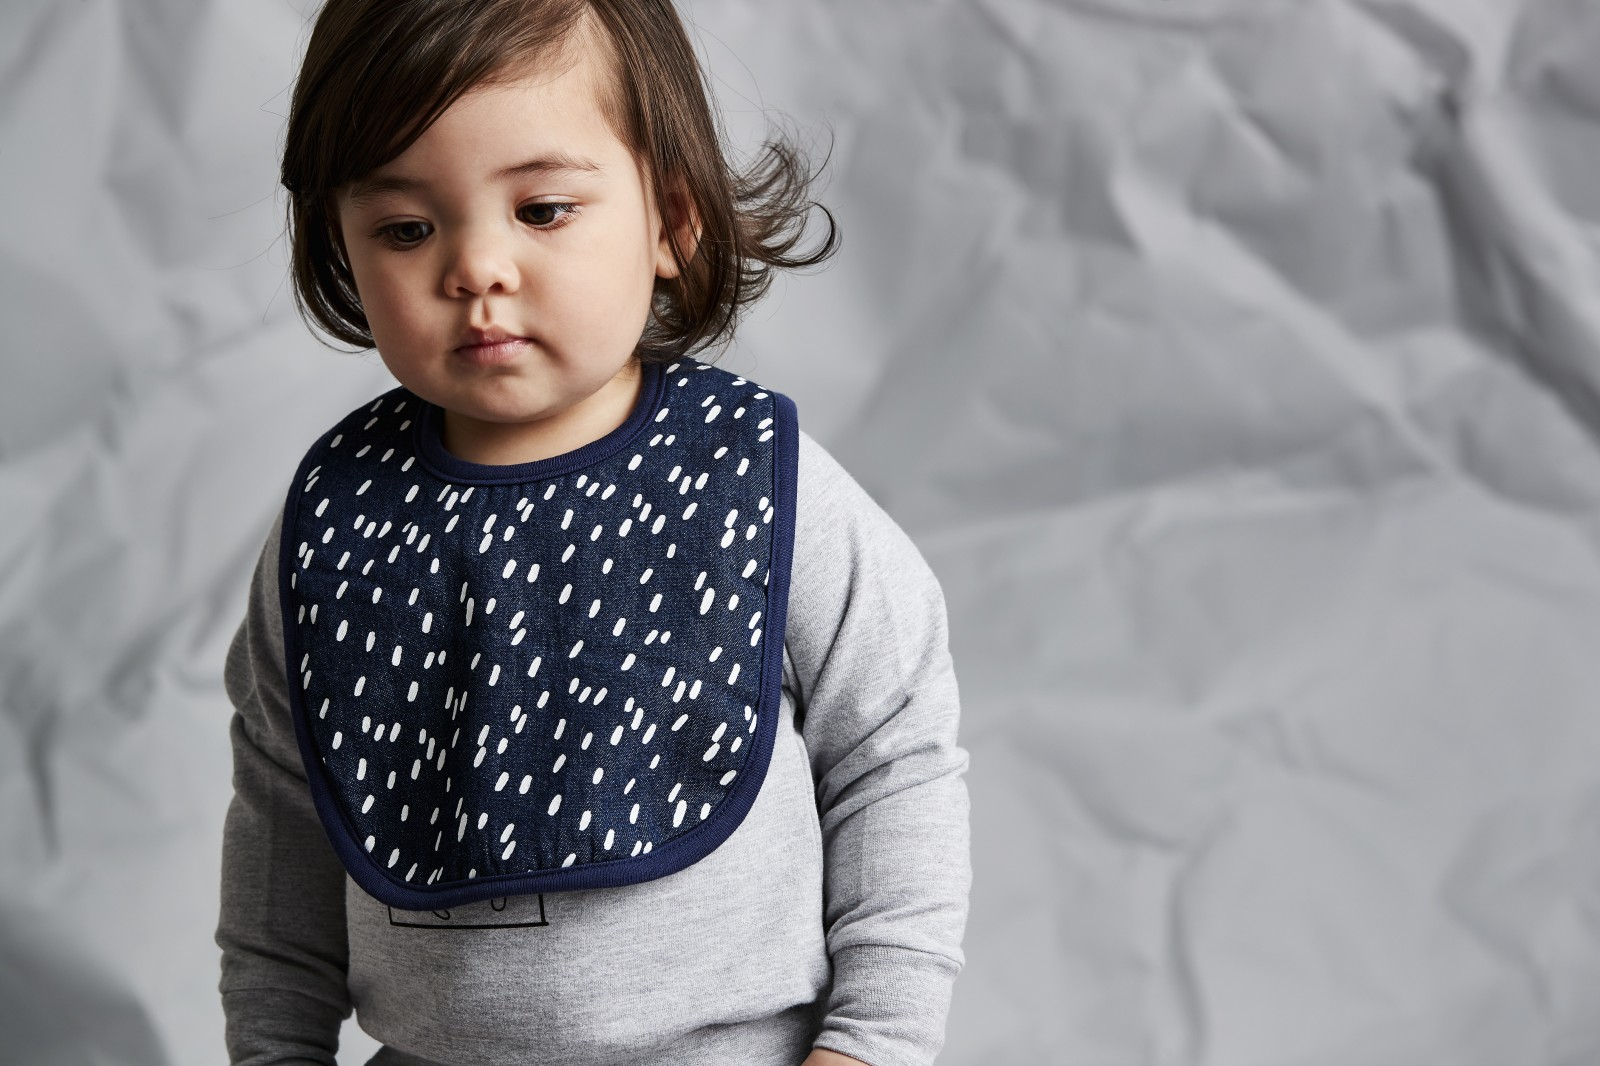 Sydney kids and lifestyle photographer, Michelle Young photographs the latest Sooki Baby kids fashion Autumn Winter Collection on location at Tiny Tribe Studio. Michelle Young is Sydneys leading kids...